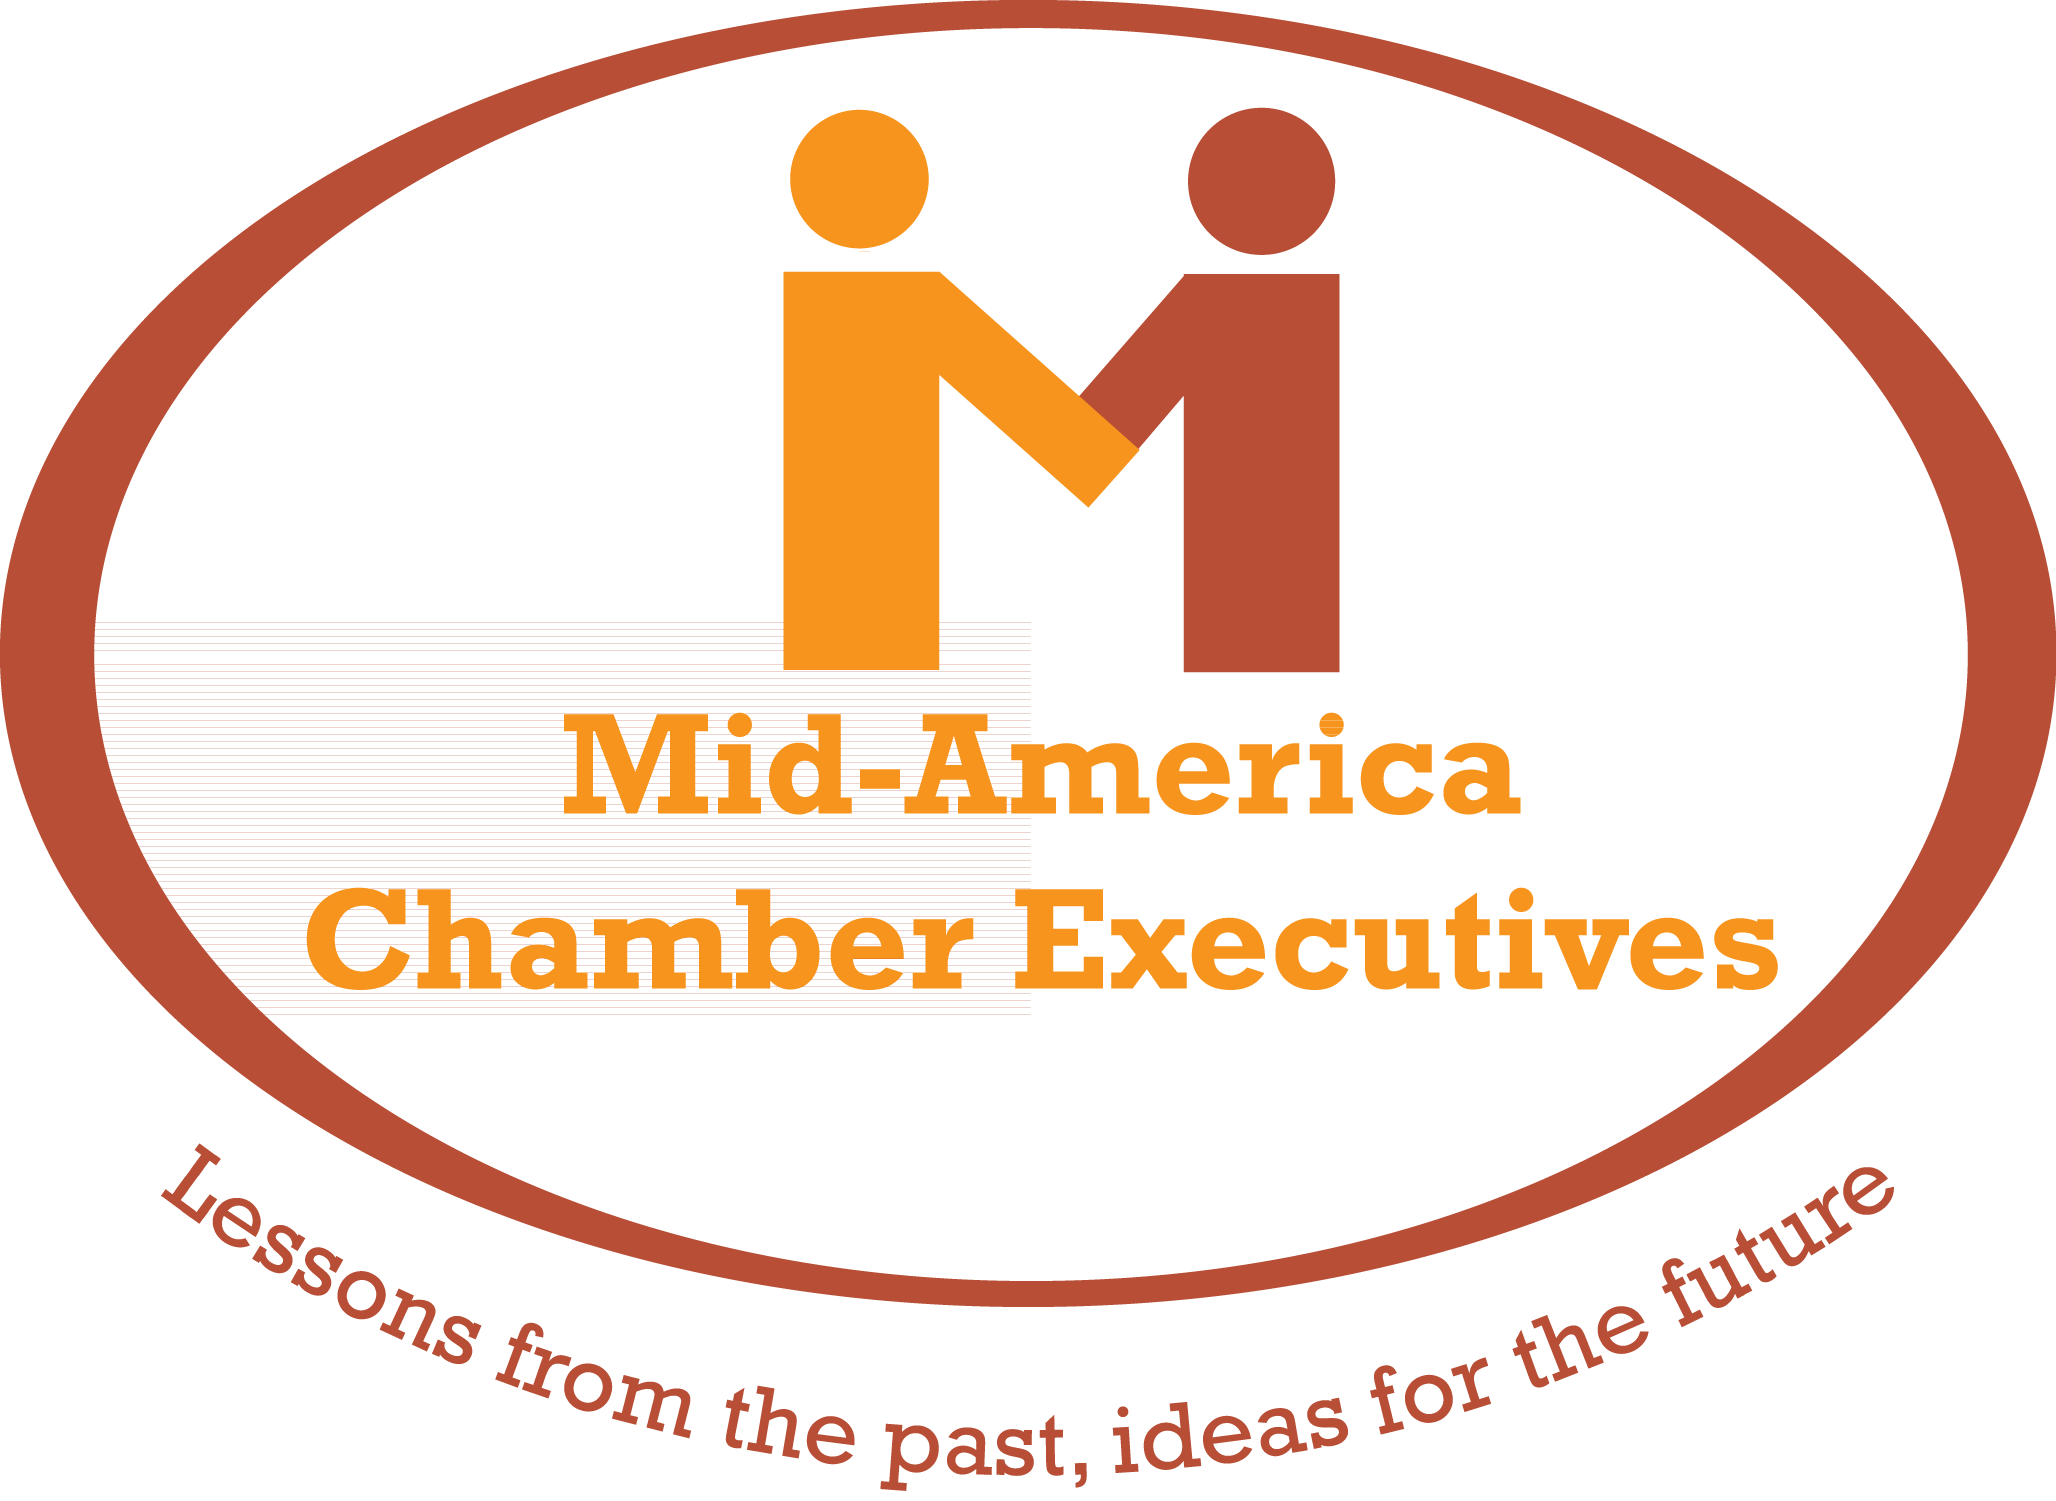 Mid-America Chamber Executives